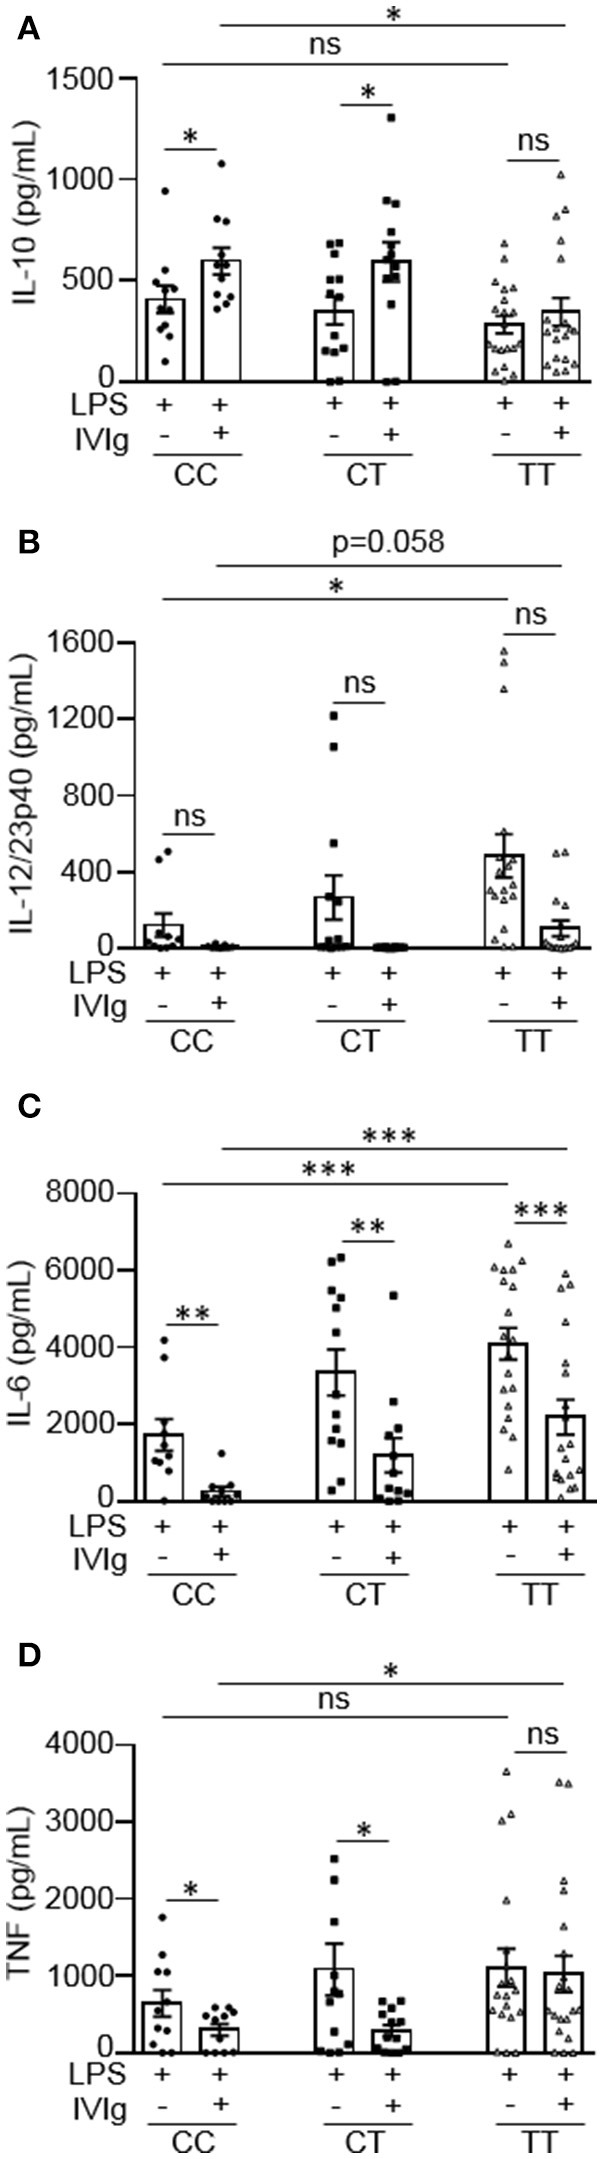 Monocytes from people with the FcγRIIA disease associated gene variant have lower IVIg-mediated anti-inflammatory responses to LPS. Monocytes from healthy control participants were stimulated with LPS (100 ng/ml) or [IVIg (5 mg/ml) + LPS (100 ng/ml)] for 24 h. Participants were genotyped for the FcγRIIA H131R polymorphism (rs1801274); CC = does not have the disease associated gene variant (low affinity), CT = heterozygous for the disease associated gene variant, and TT = homozygous for the disease associated gene variant (high affinity). Clarified cell supernatants were assayed for (A) IL-10, (B) <t>IL-12/23p40,</t> (C) IL-6, and (D) <t>TNF</t> and responses were stratified to genotype. Data are mean ± SEM from n = 11 CC participants, n = 13 CT participants, and n = 20 TT participants performed as independent experiments, assayed in duplicate. * p